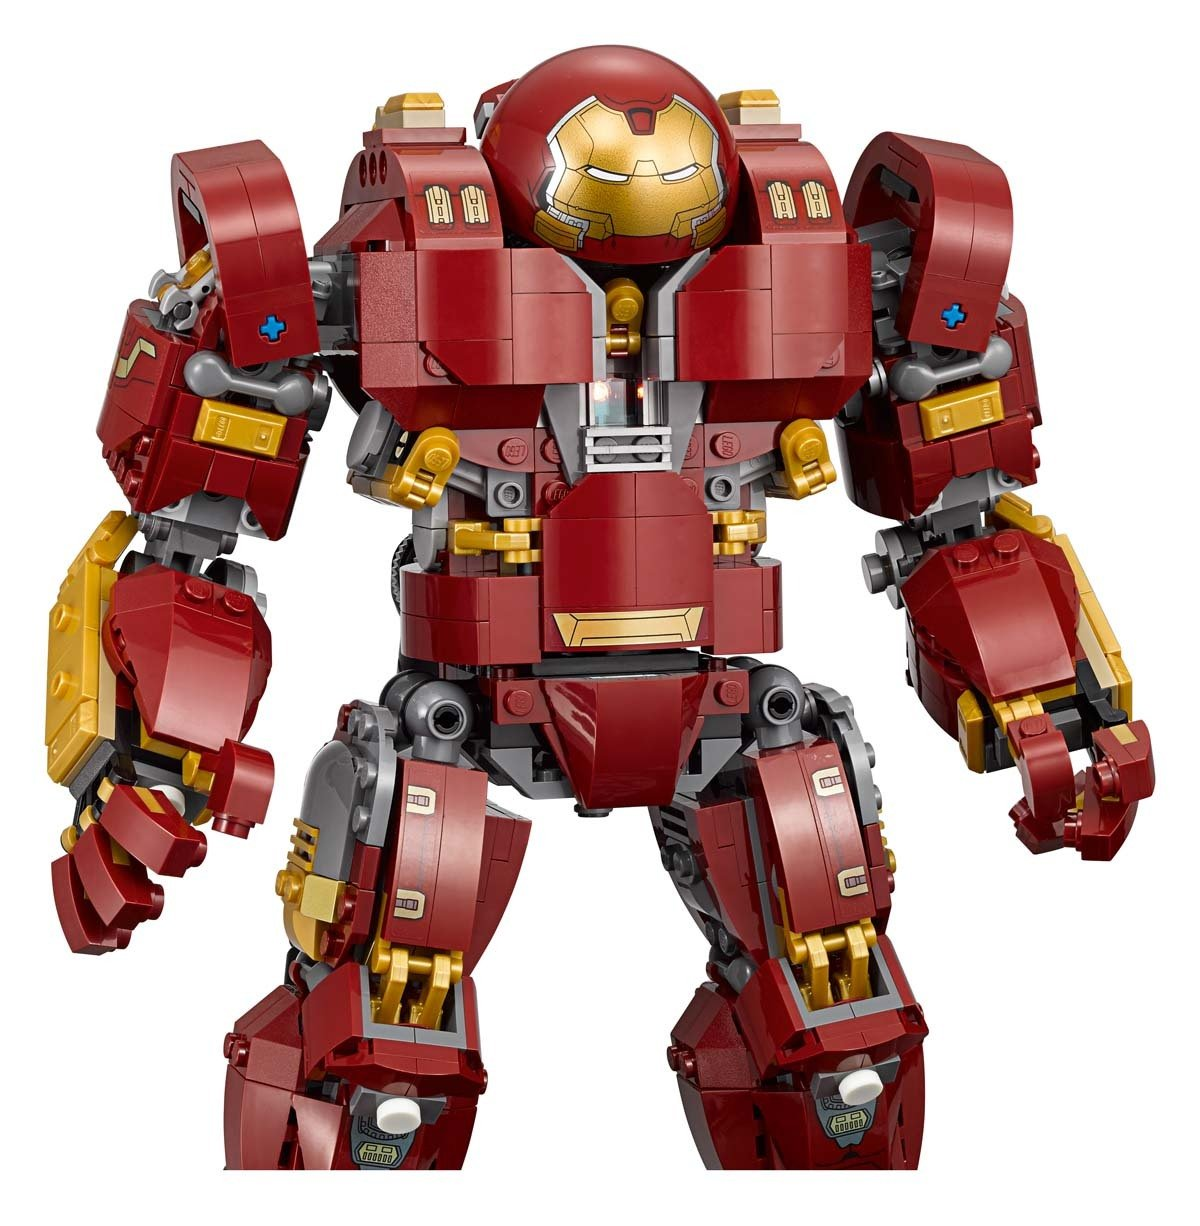 check-out-this-incredibly-cool-iron-man-hulkbuster-lego-playset3